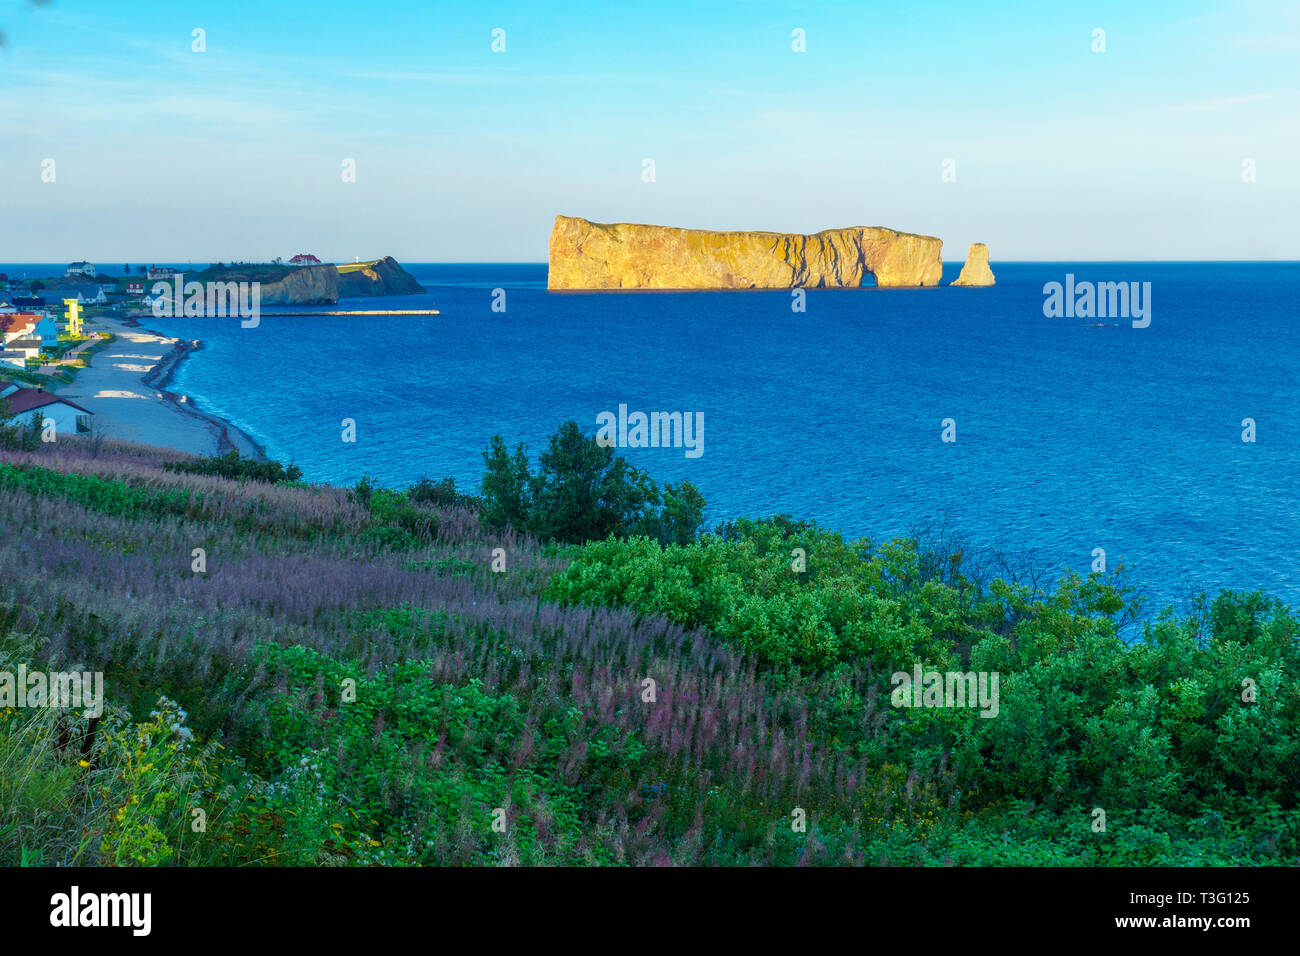 View of the Perce rock, and Perce village, at the tip of Gaspe Peninsula, Quebec, Canada - Stock Image